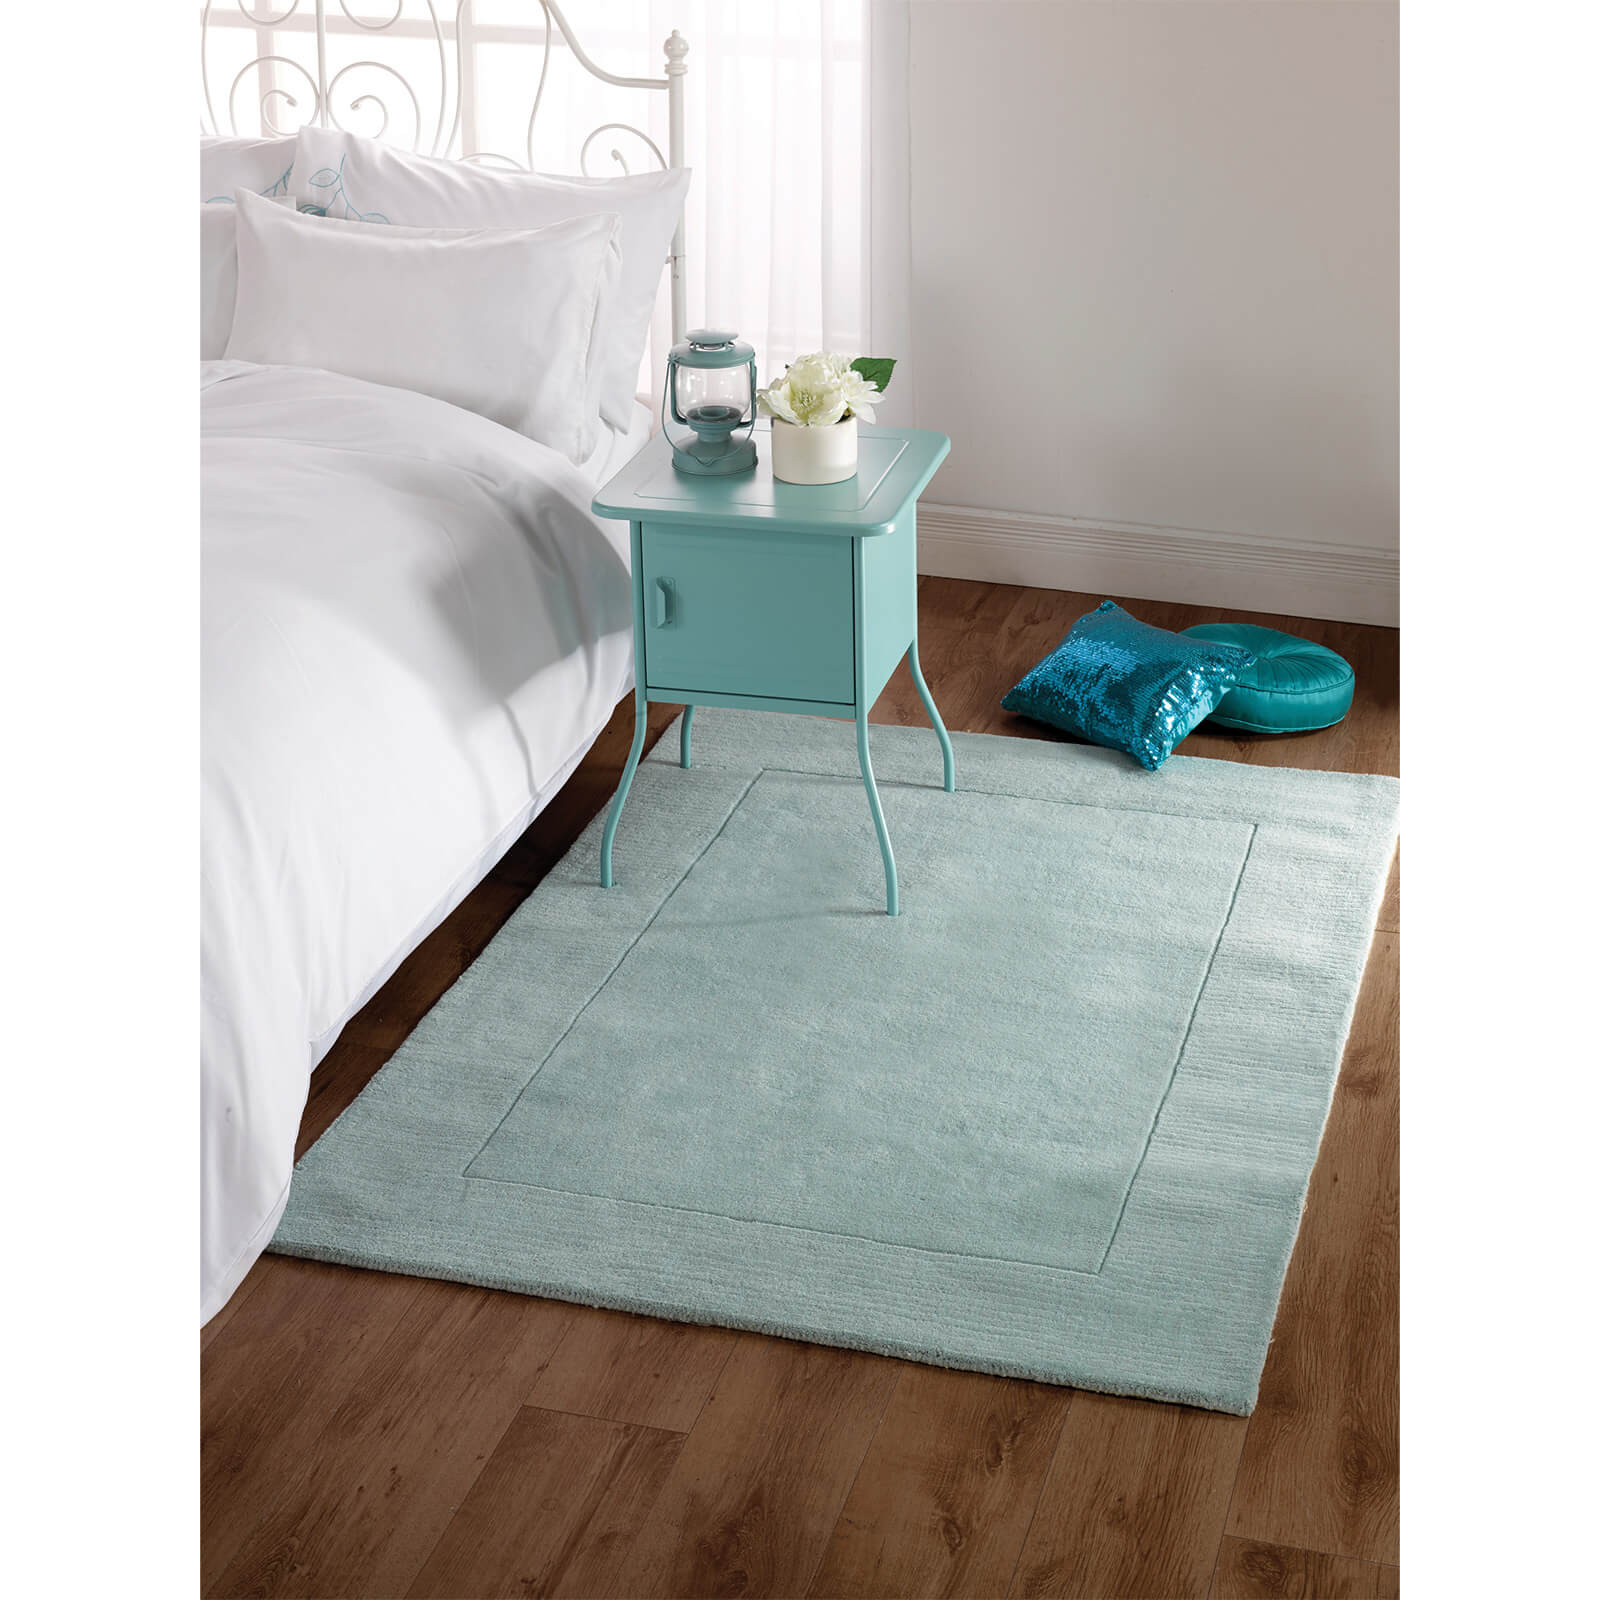 Flair Tuscany Siena Rug - Duck Egg